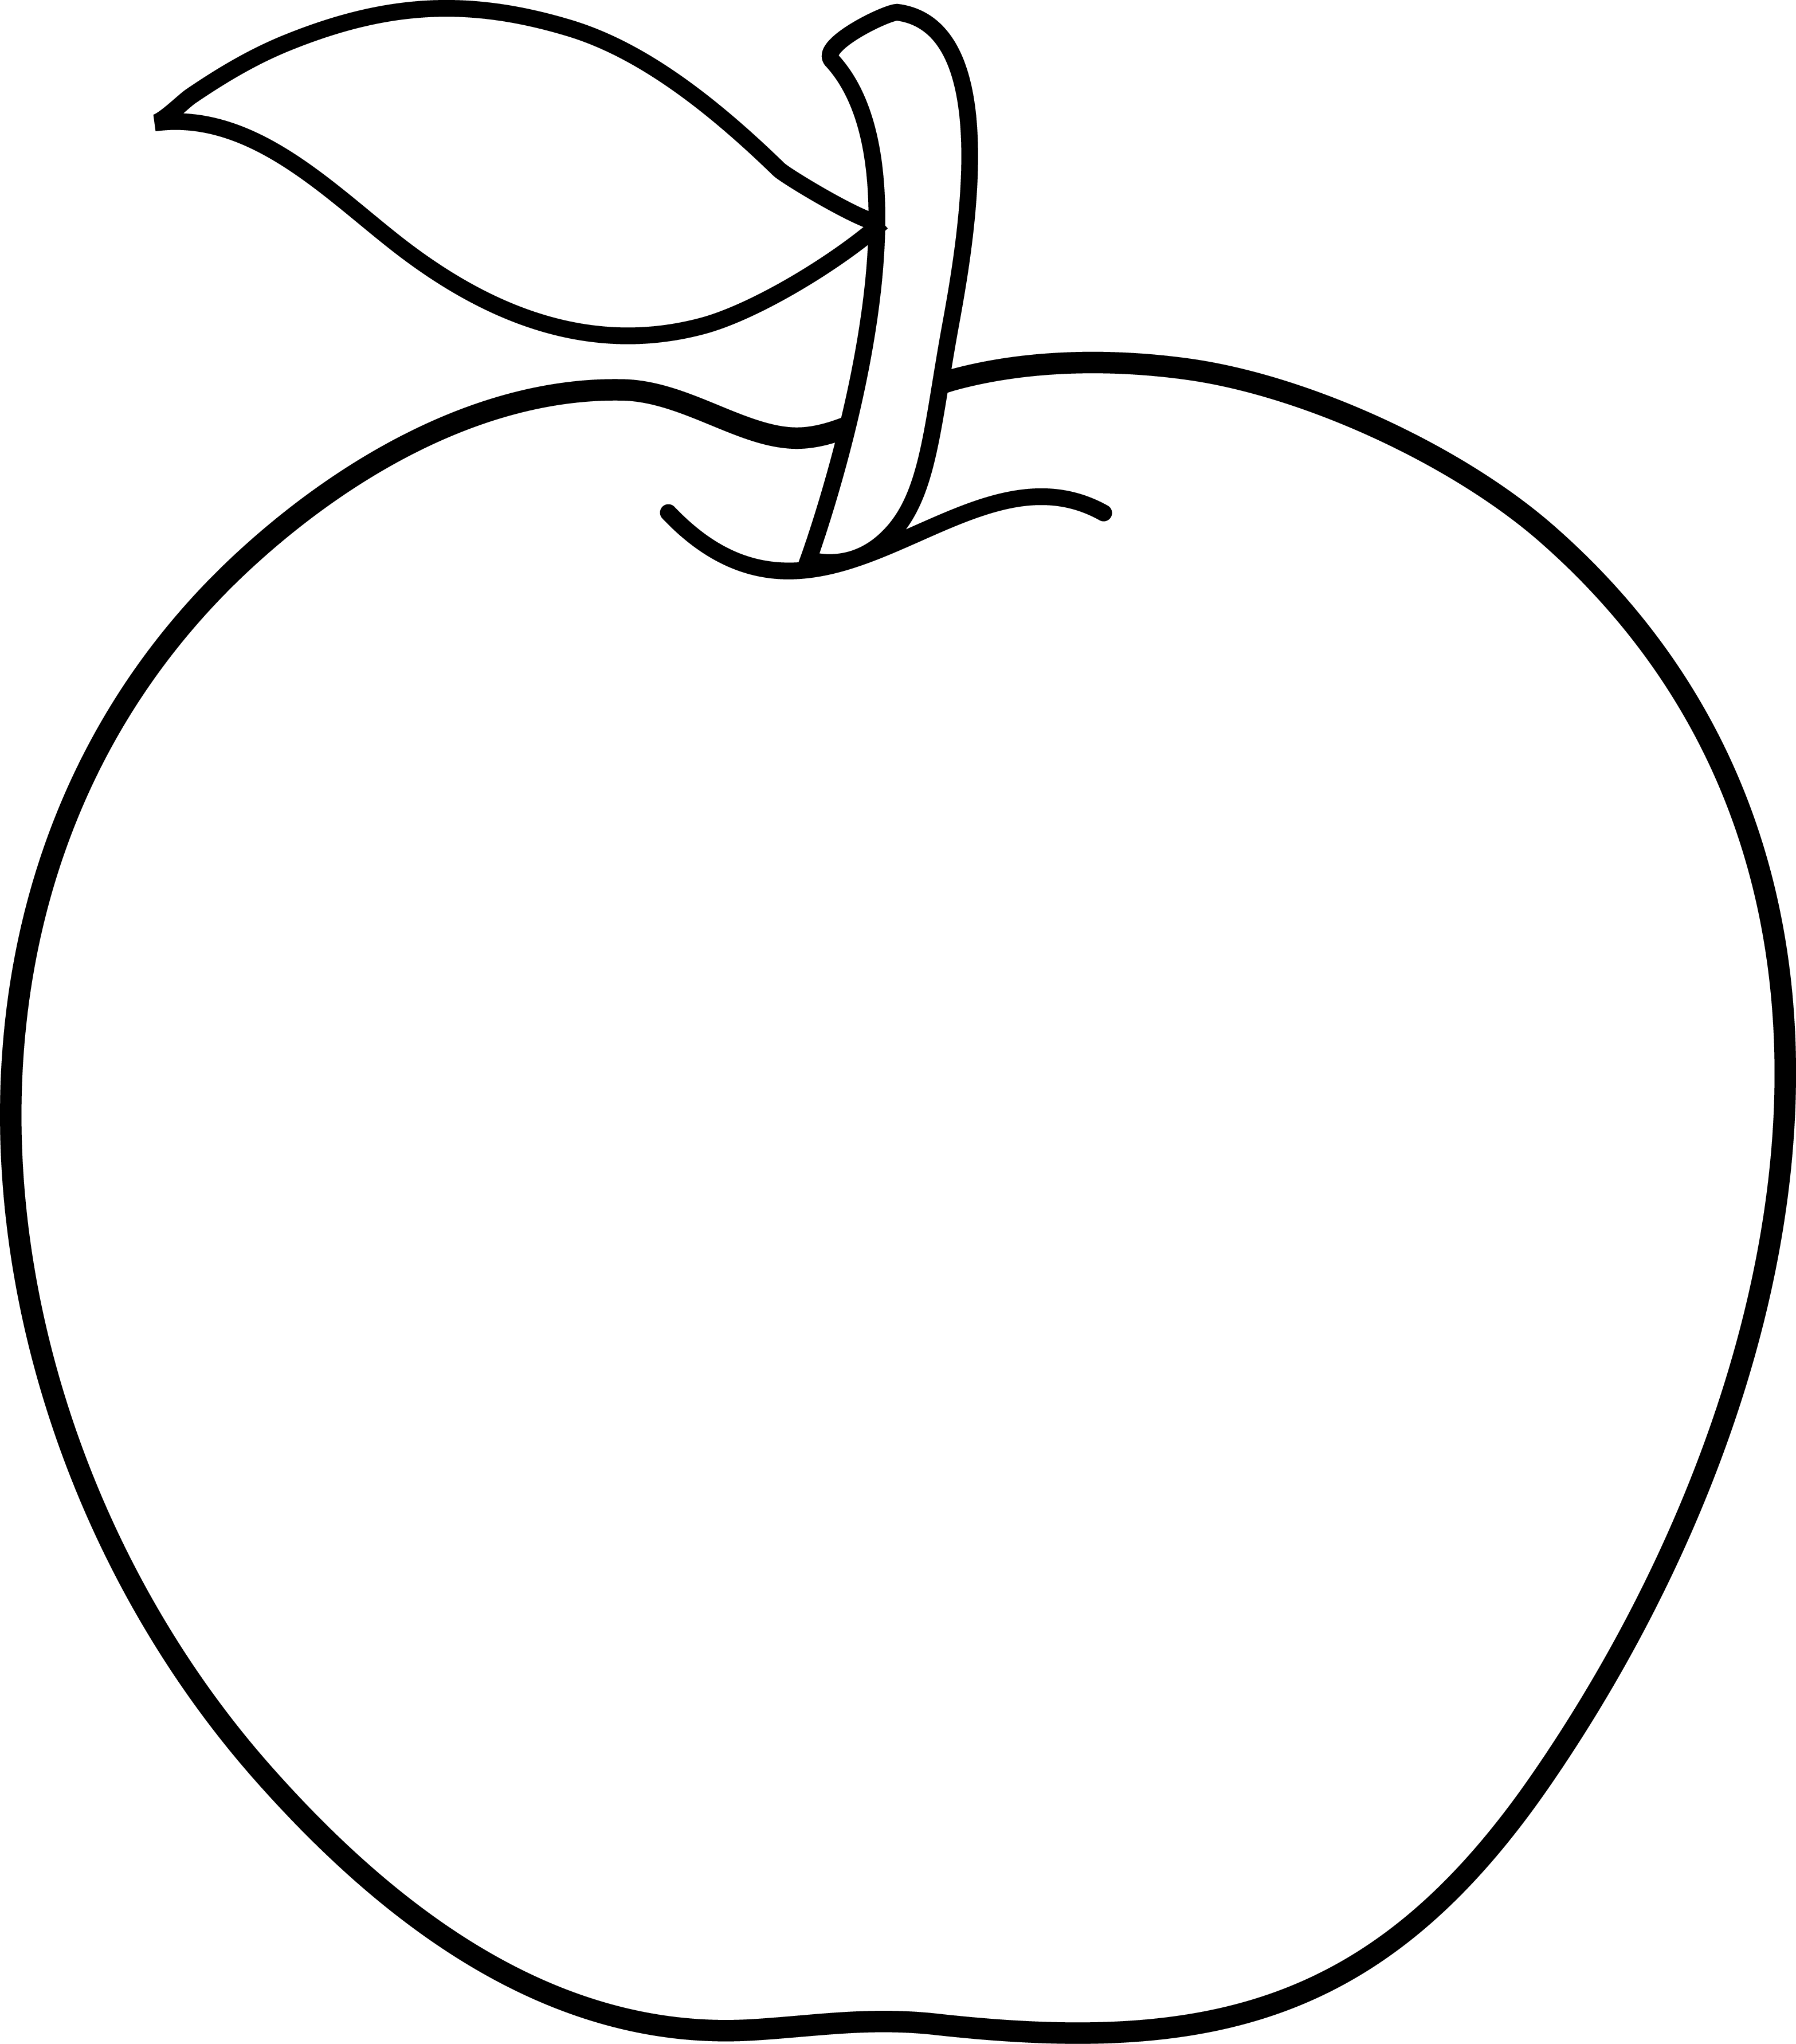 And White Apple Tree Clipart   Clipart Panda   Free Clipart Images